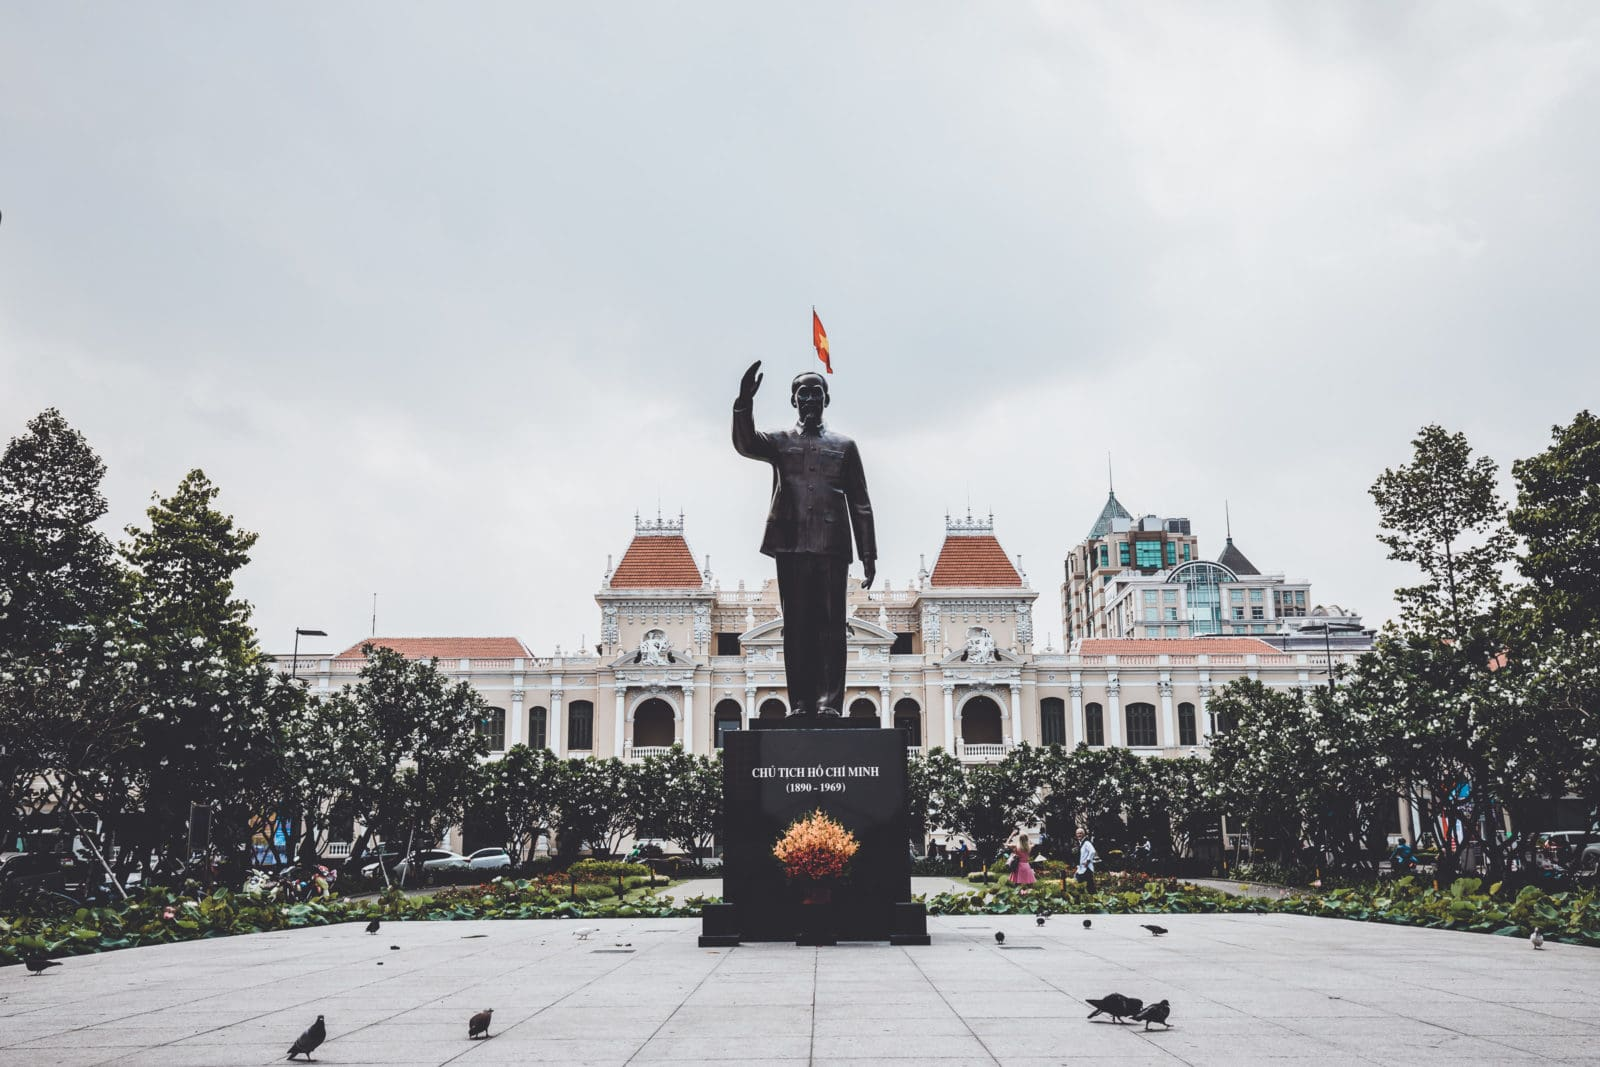 Statue Ho Chi Minh City People's Committee